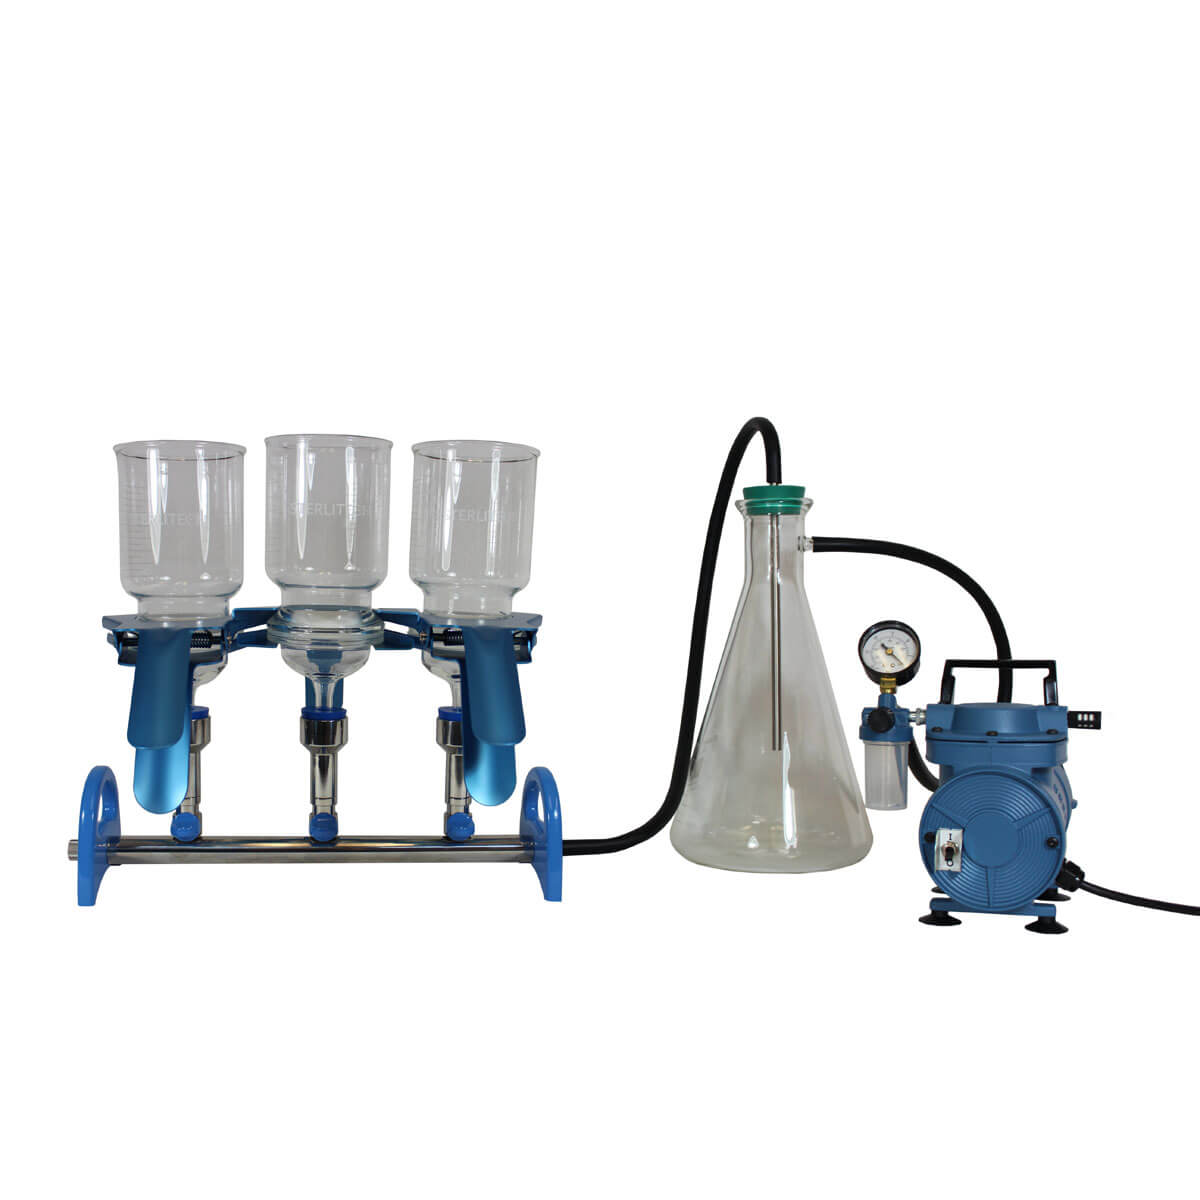 Sterlitech Manifold Kit for Botanical Extraction, Includes 90mm Glass Funnels, 3-place SS Manifold, Trap Bottle Assembly, Pump, and Tubing